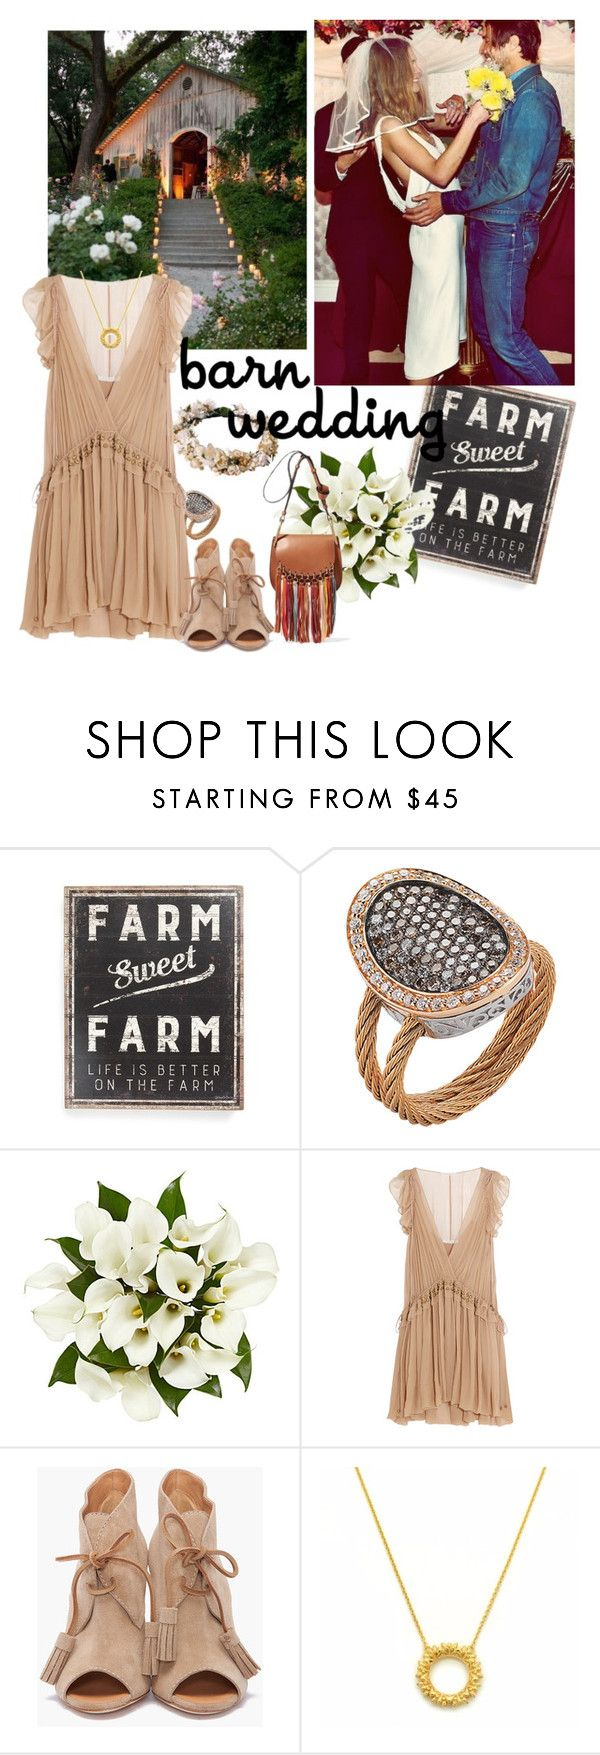 """""""Best Dressed Guest: Barn Weddings"""" by likeastarrr ❤ liked on Polyvore featuring Primitives By Kathy, Alor, Chloé, Dsquared2, bestdressedguest and barnwedding"""